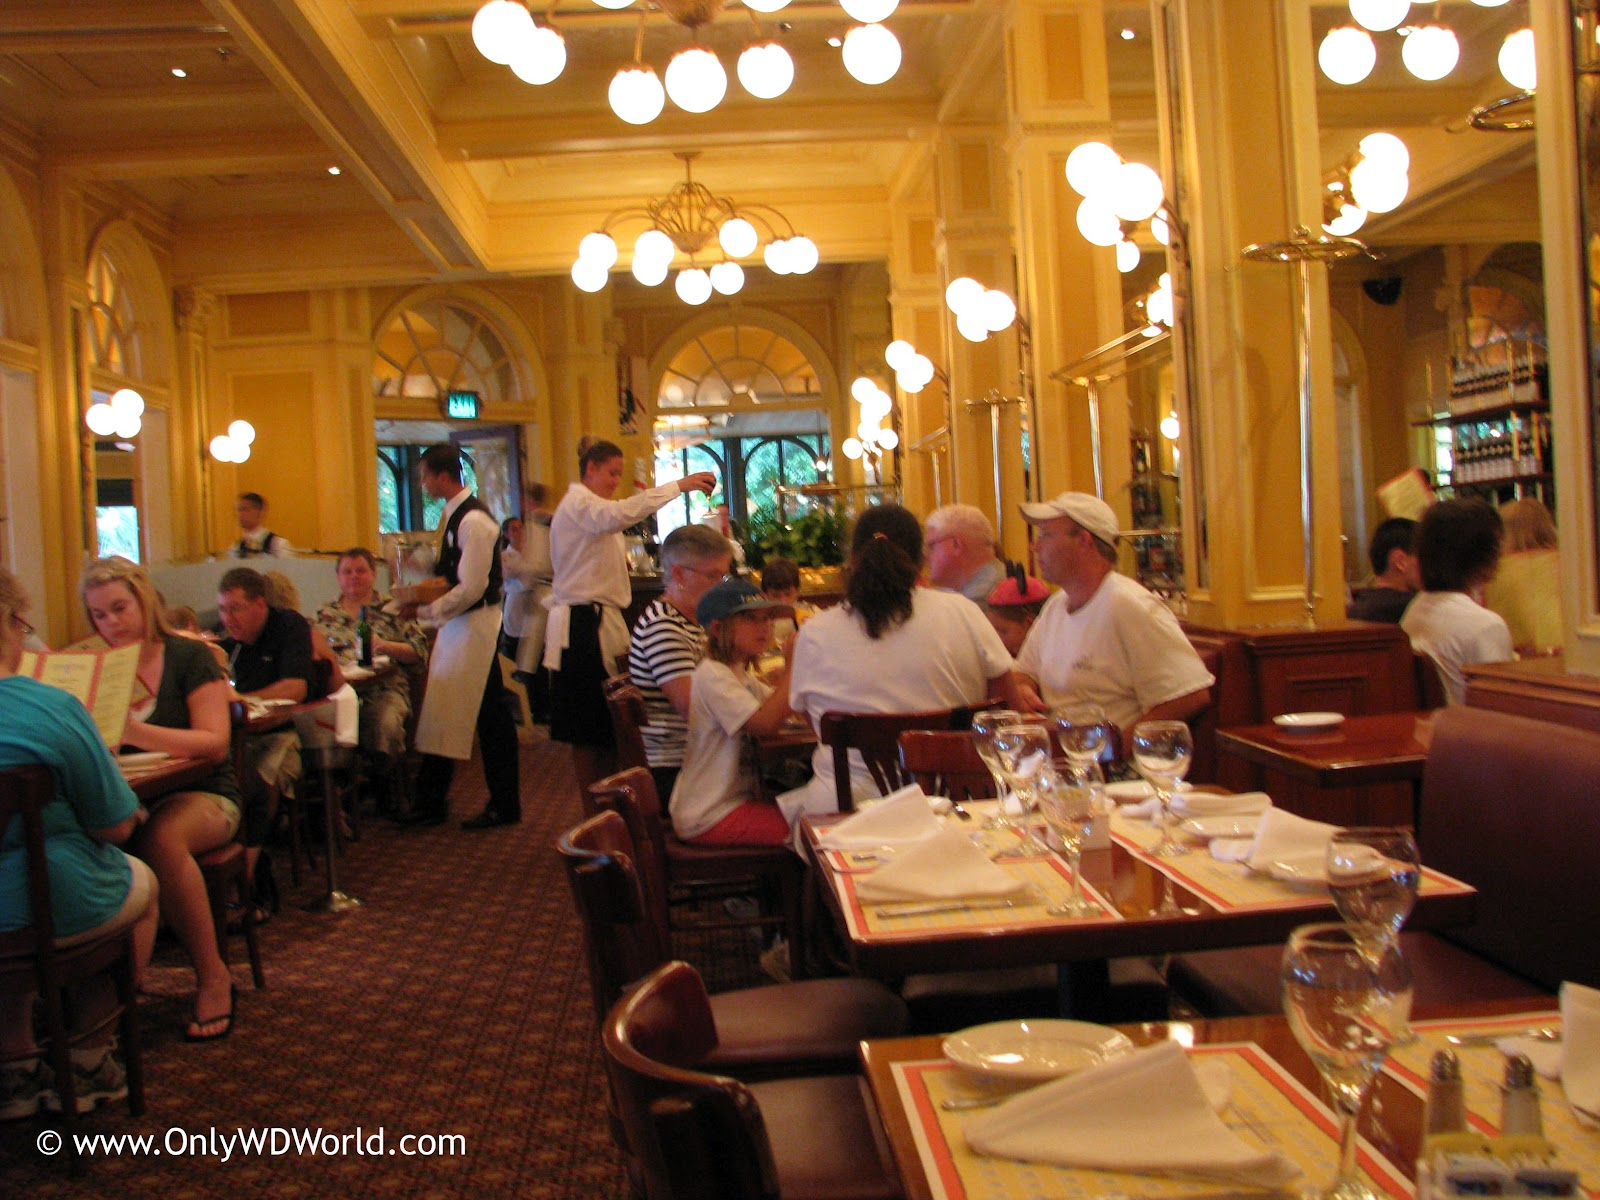 Disney World Free Dining Plan Offer For Fall 2012 Your